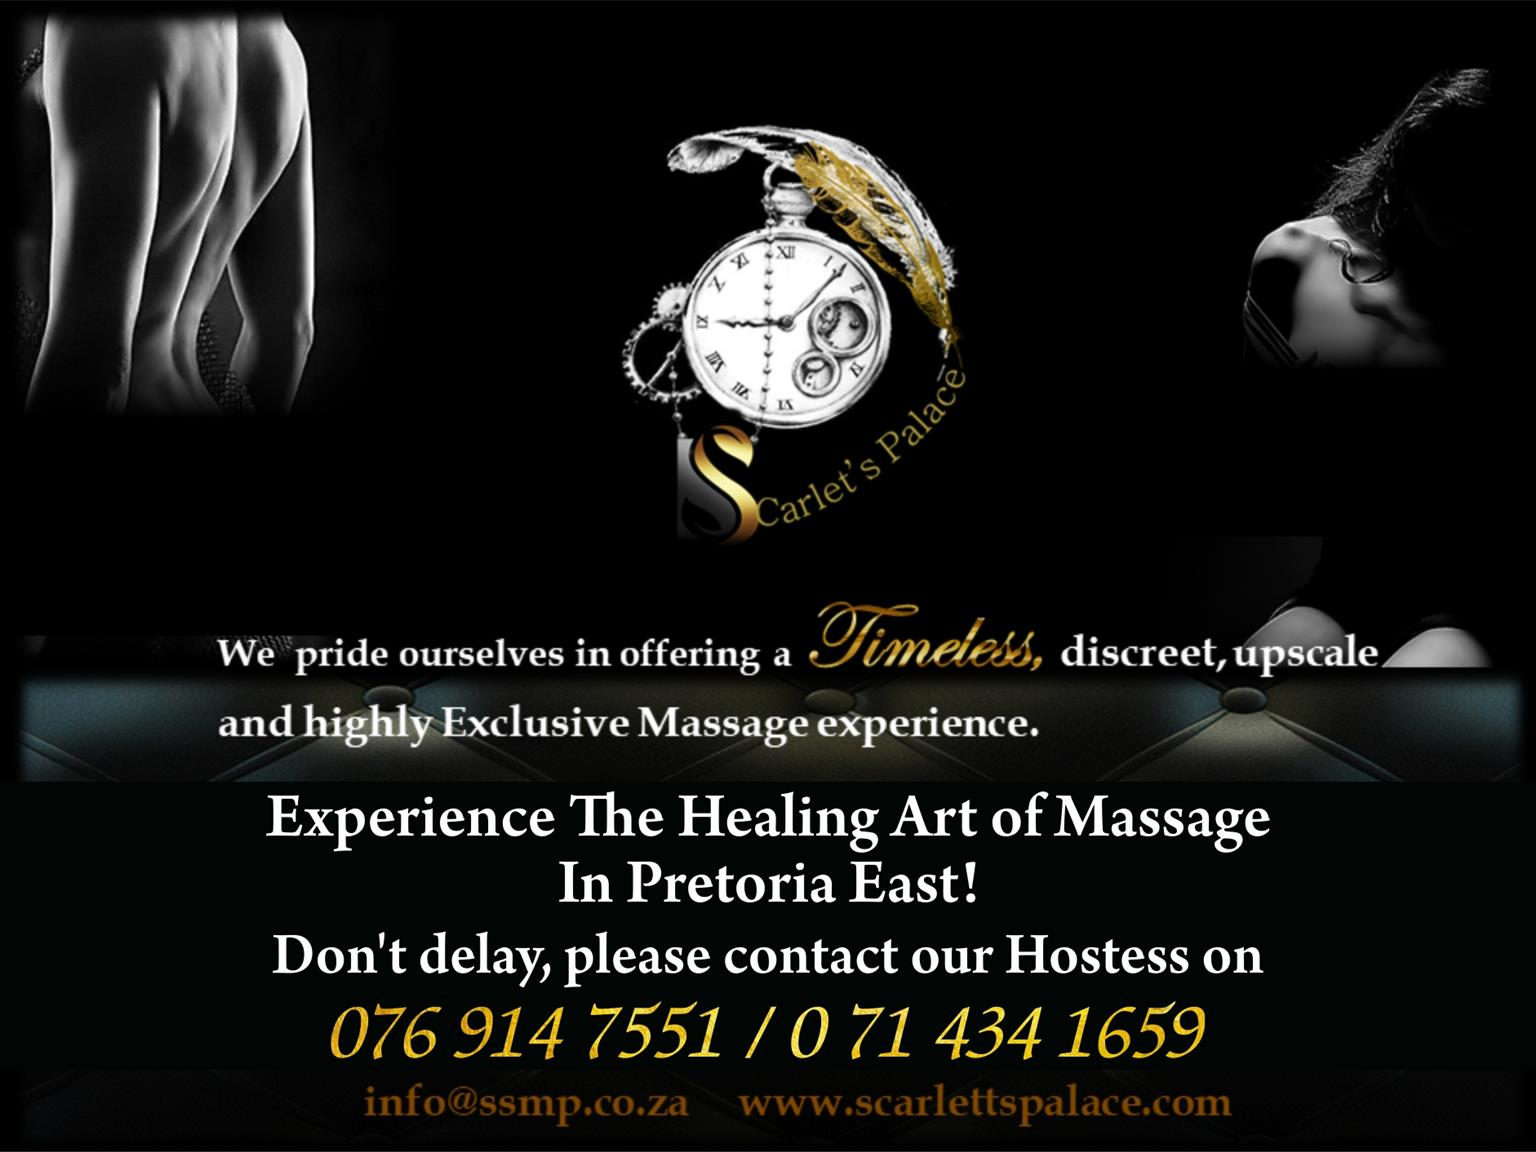 Massage and Healing Art Offered in Pretoria East